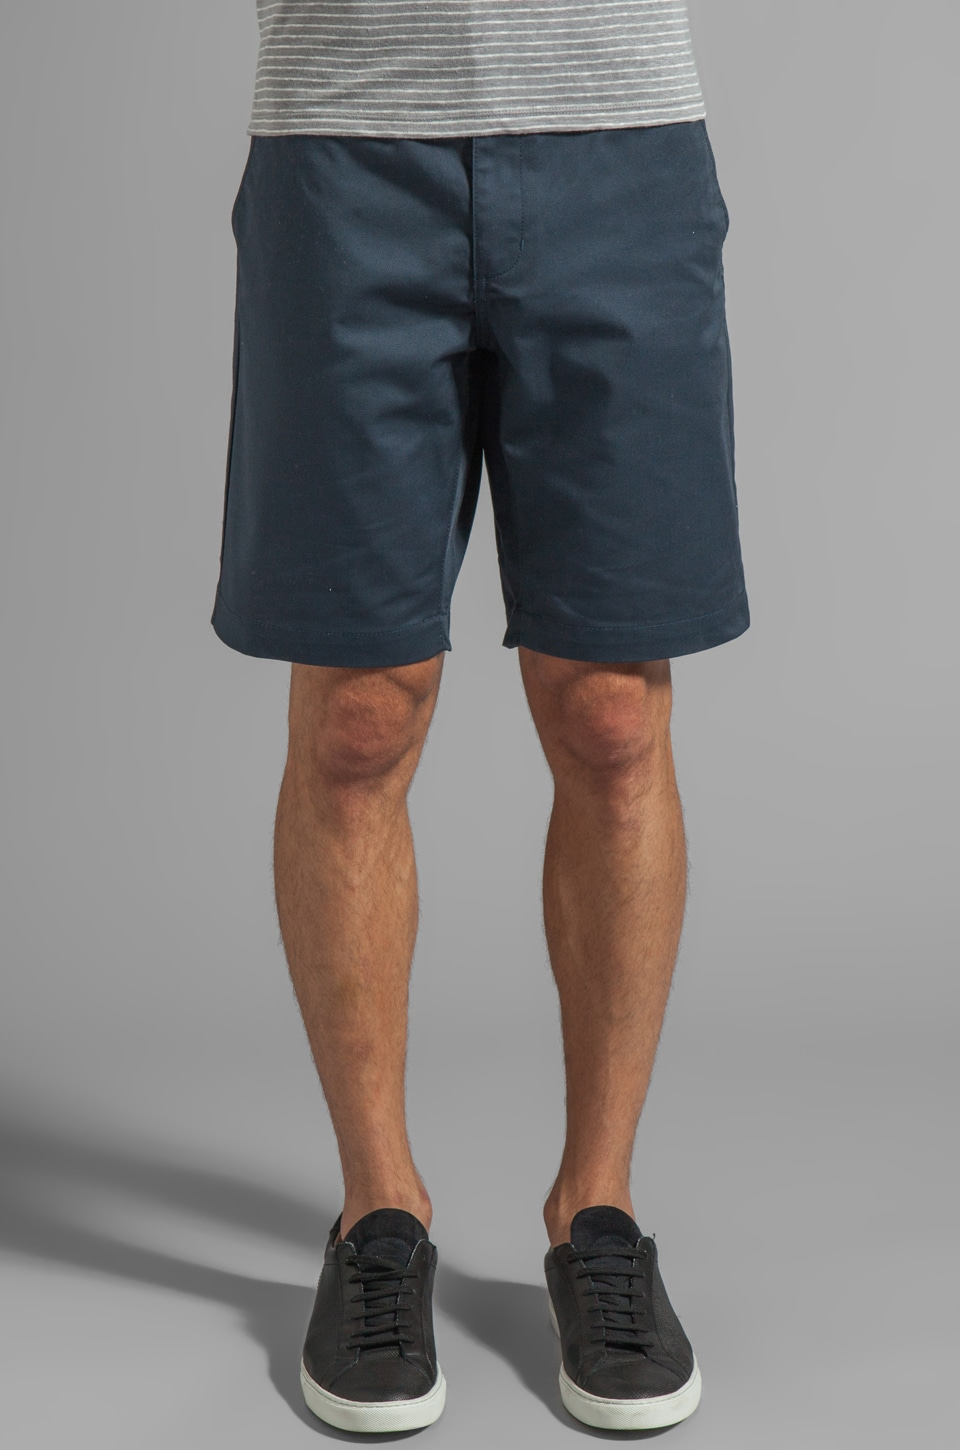 RVCA Sunday Chino Short in Midnight